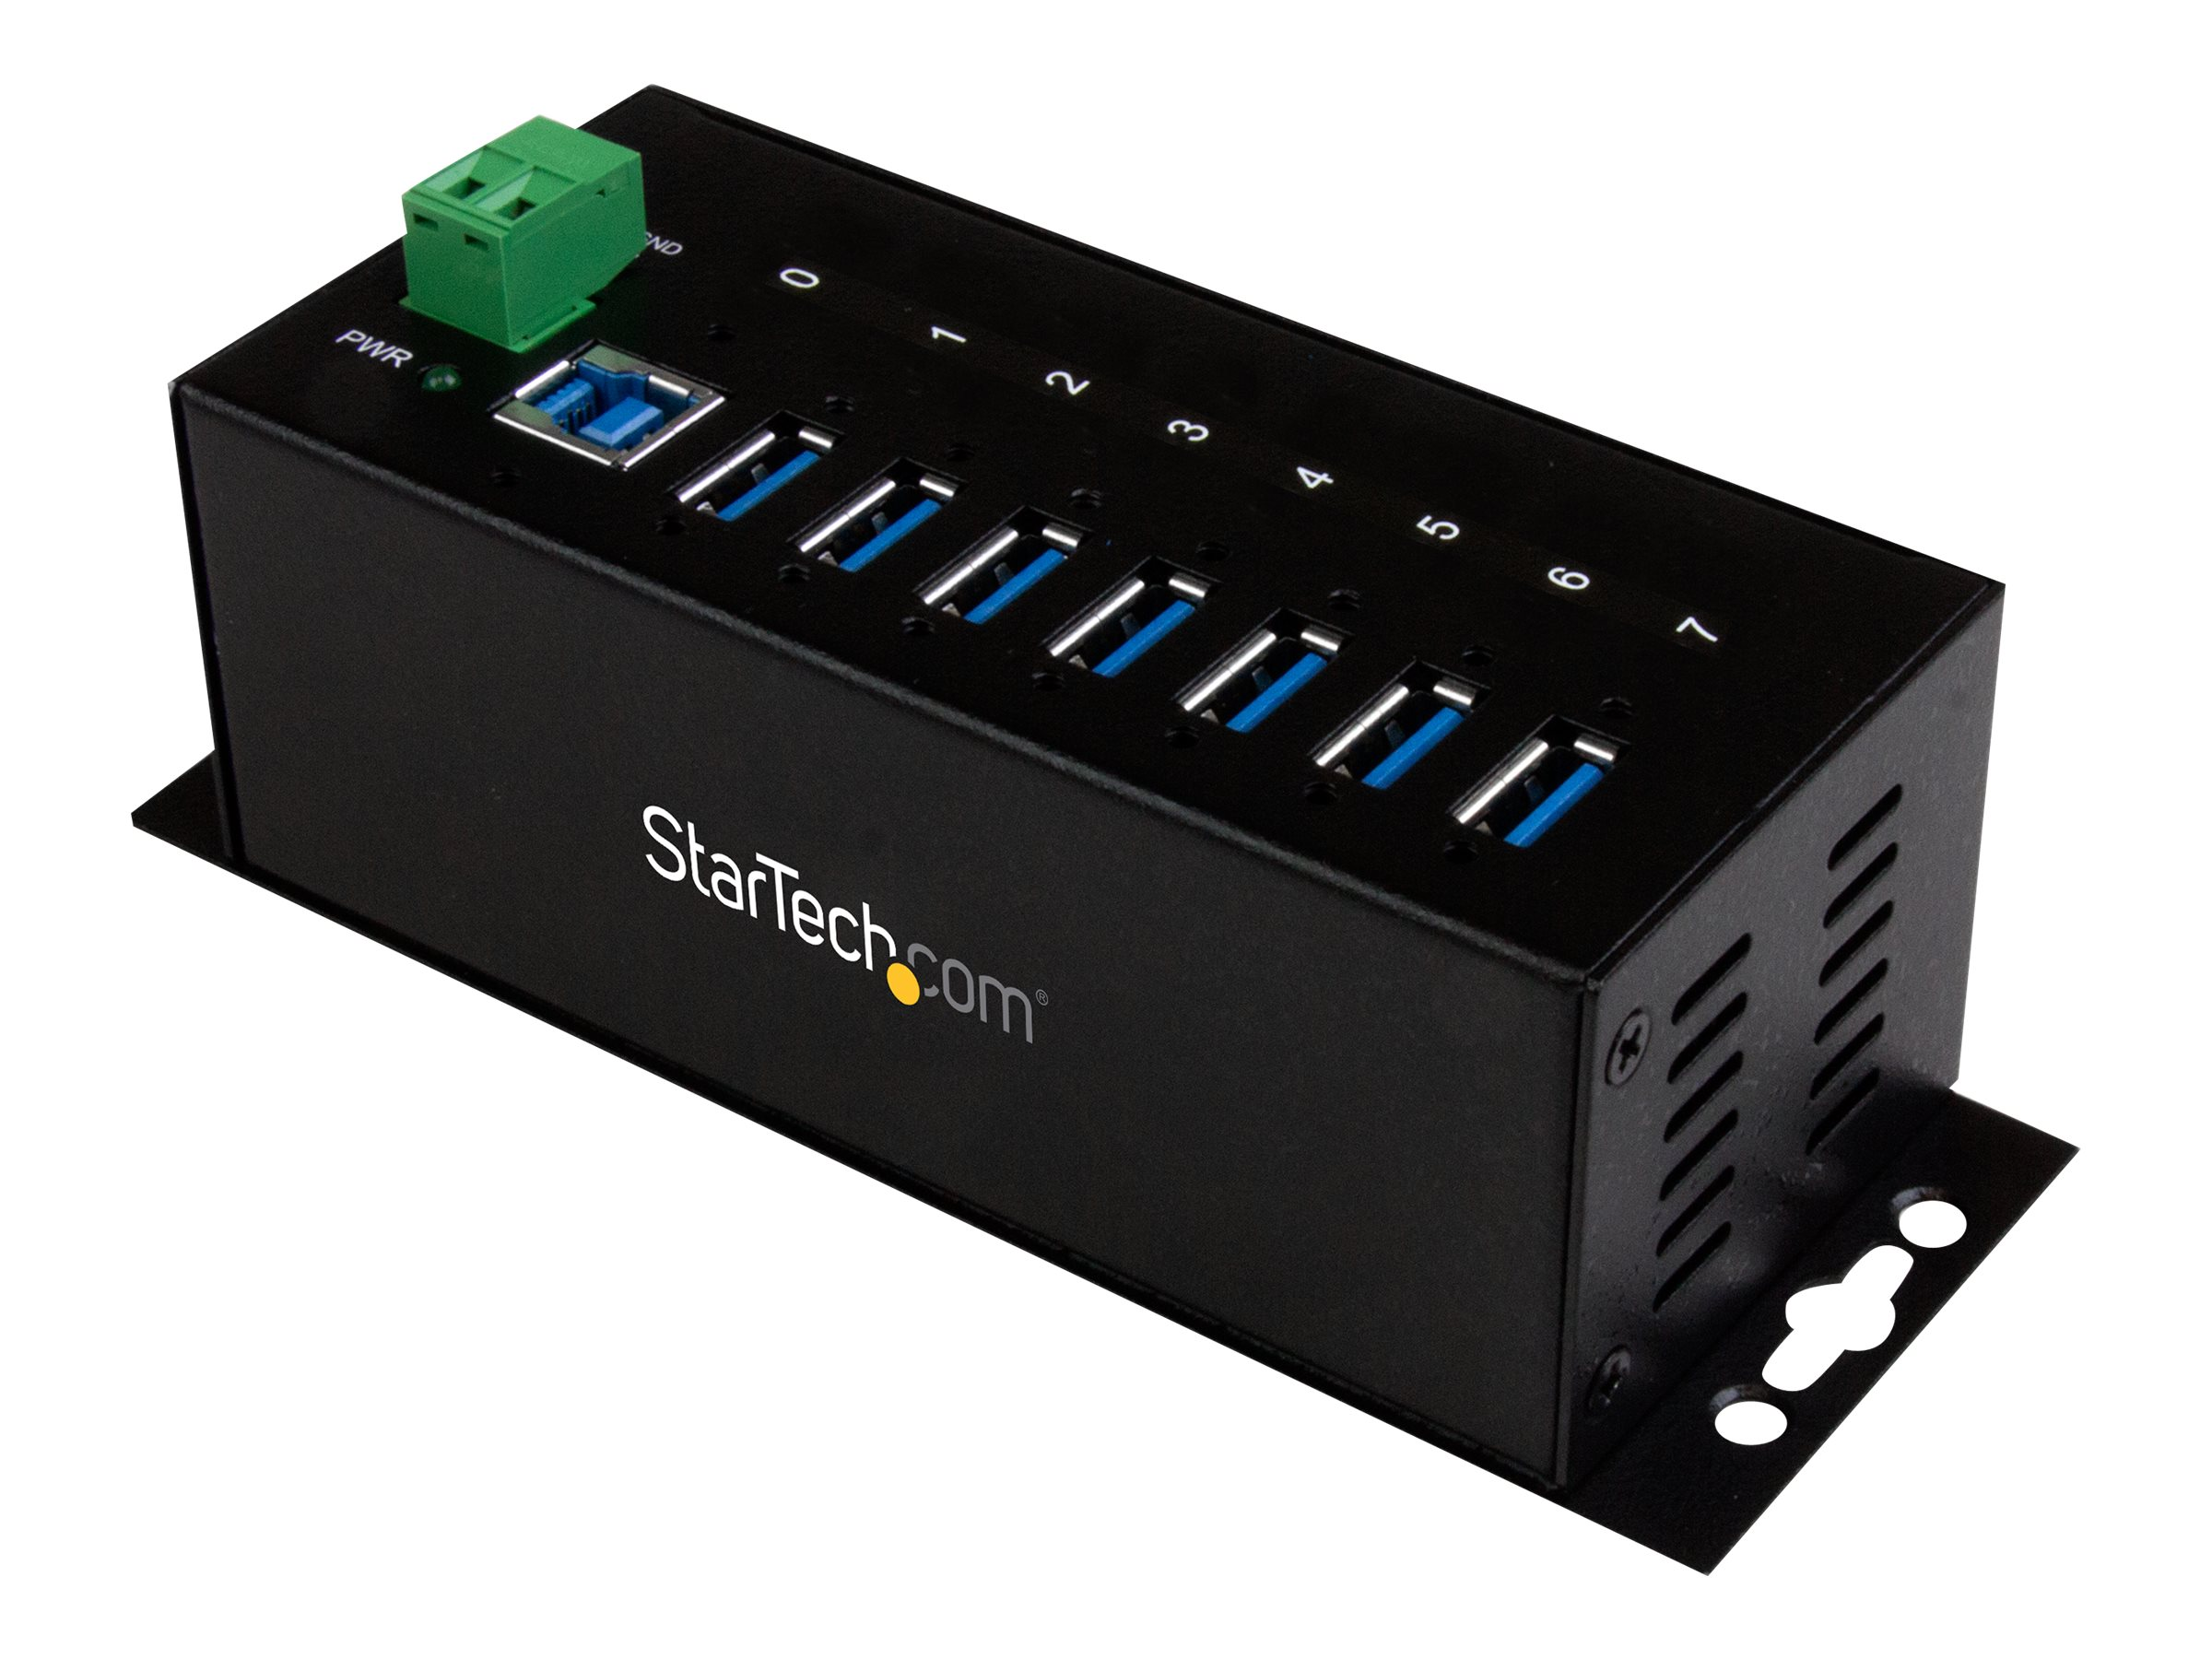 StarTech.com 7-Port Industrial Superspeed USB 3.0 Hub Mountable